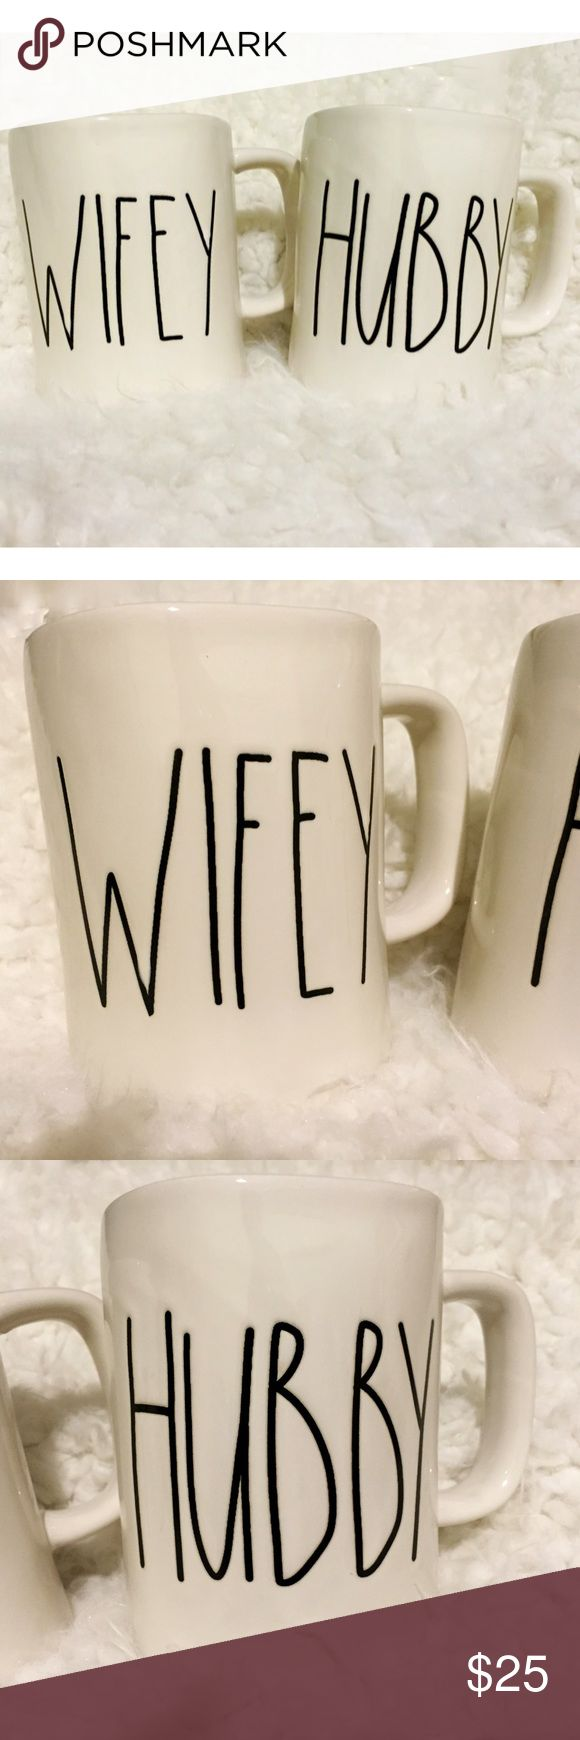 Rae Dunn Wifey and Hubby Mug Set Brand new, never used. This set includes 1 Rae Dunn Wifey and 1 Hubby Ivory/Off White Mug. Perfect to use for that rustic/farmhouse style or to give as a wedding or housewarming gift! i have other Rae Dunn items in my closet! Rae Dunn Other